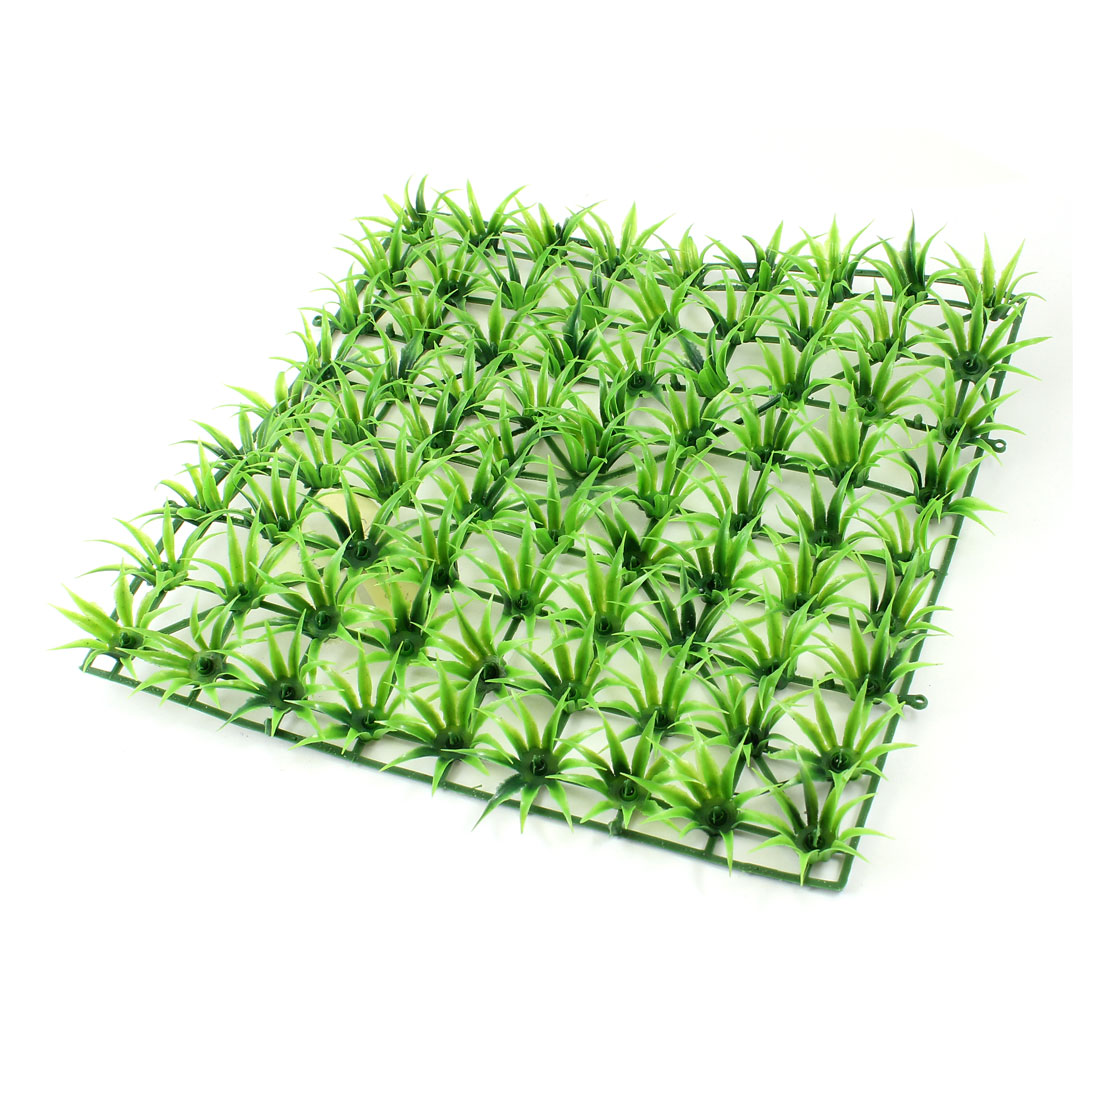 22.5cm x 22.5cm Green Grass Pine Needle Artificial Lawn Room Fish Tank Aquarium Decor